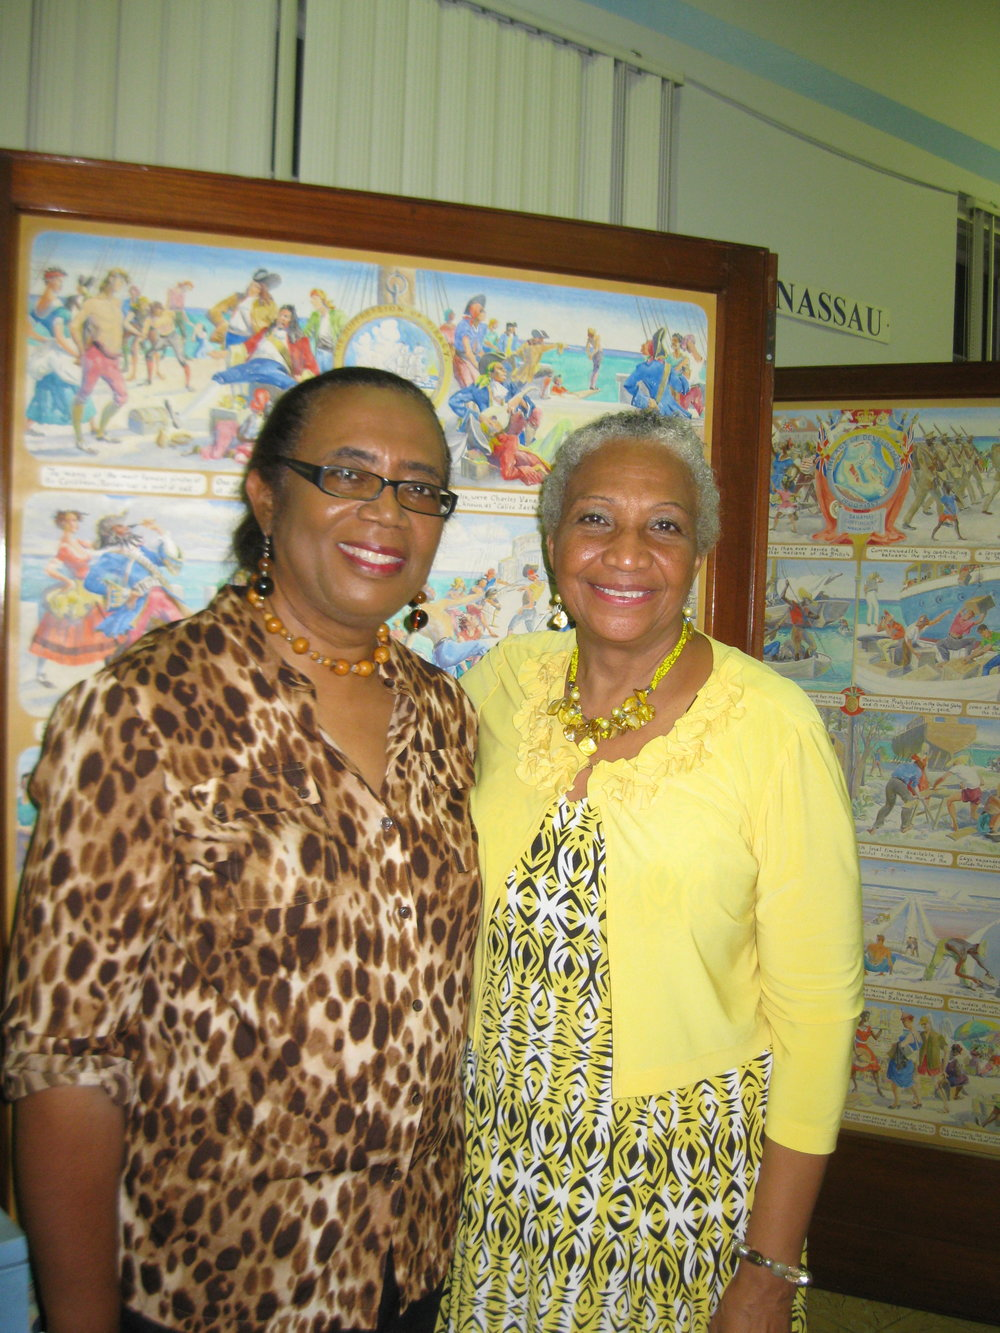 Glinton-Meicholas (left) with Bahamas Historical Society President, Andrea Major